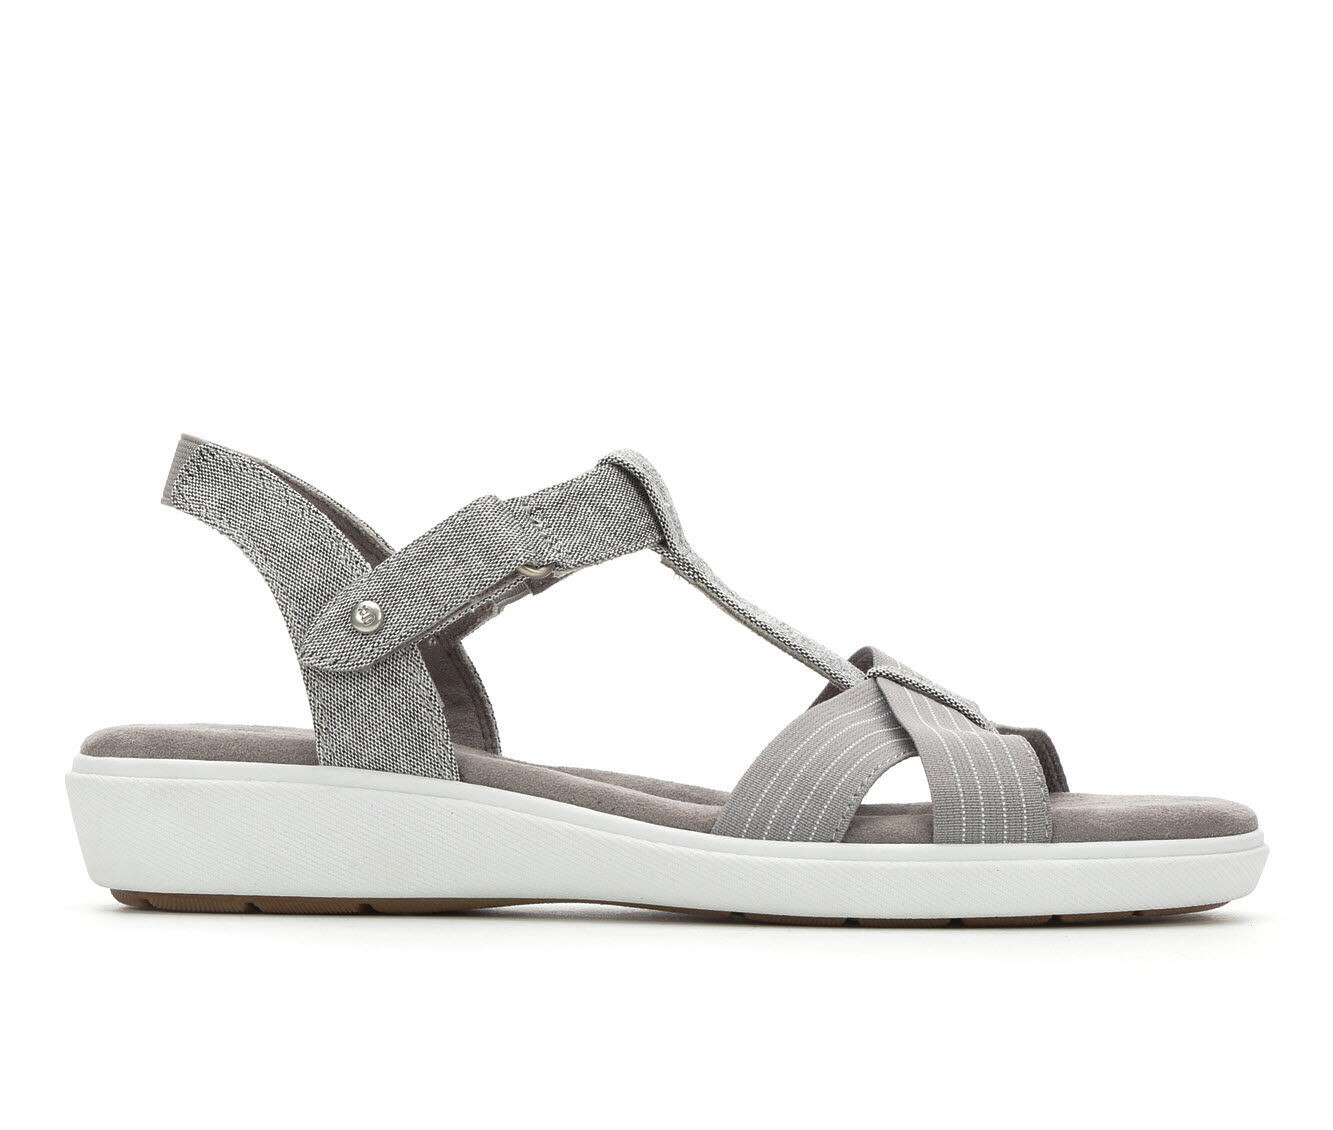 Women's Grasshoppers Ruby T-Strap Sandals Grey